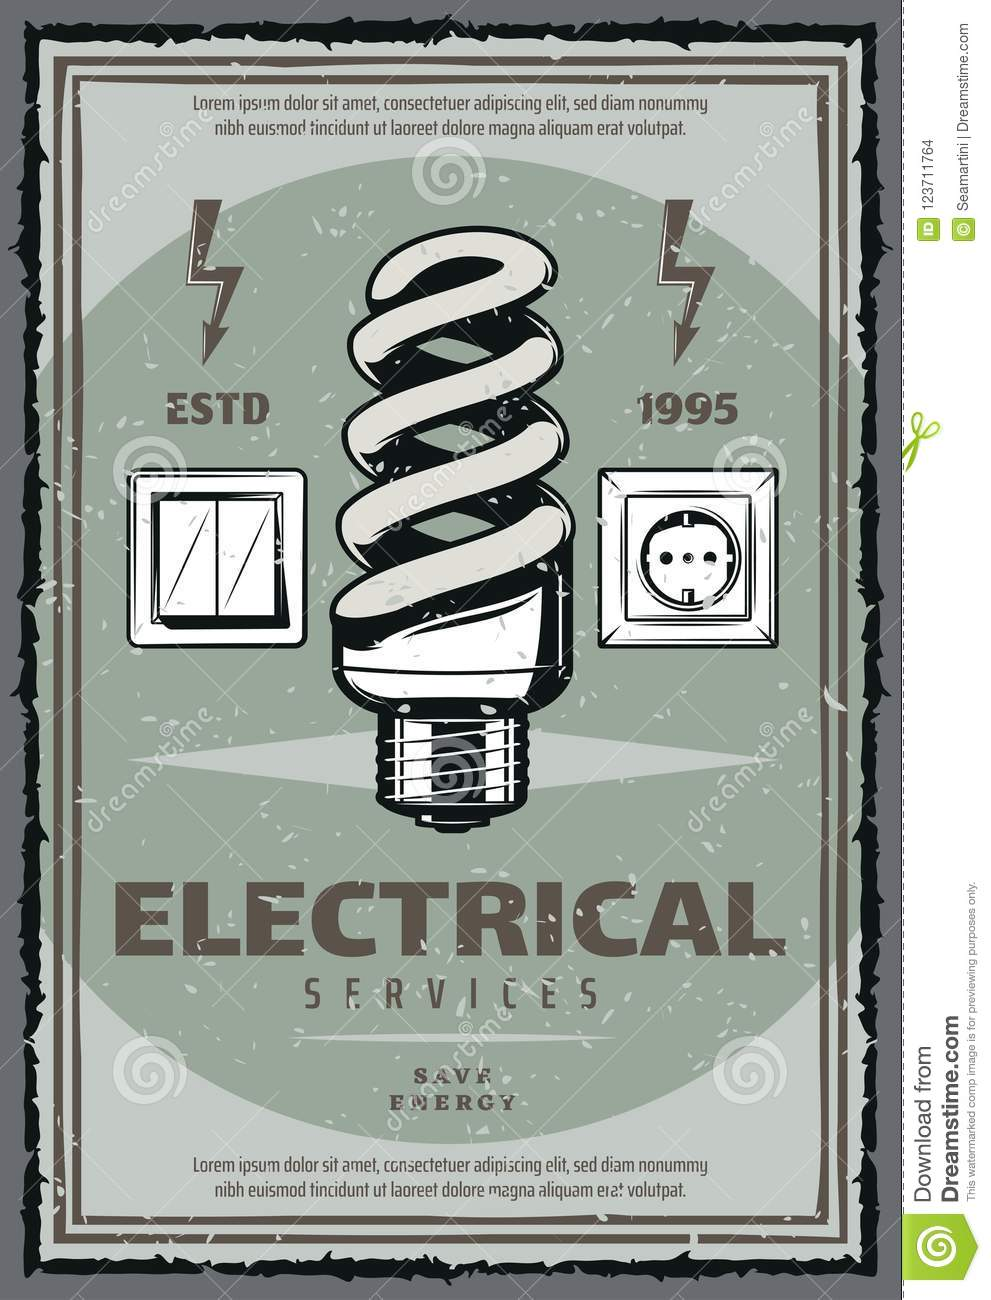 Electrical Service Vintage Poster With Light Bulb Stock Vector ...